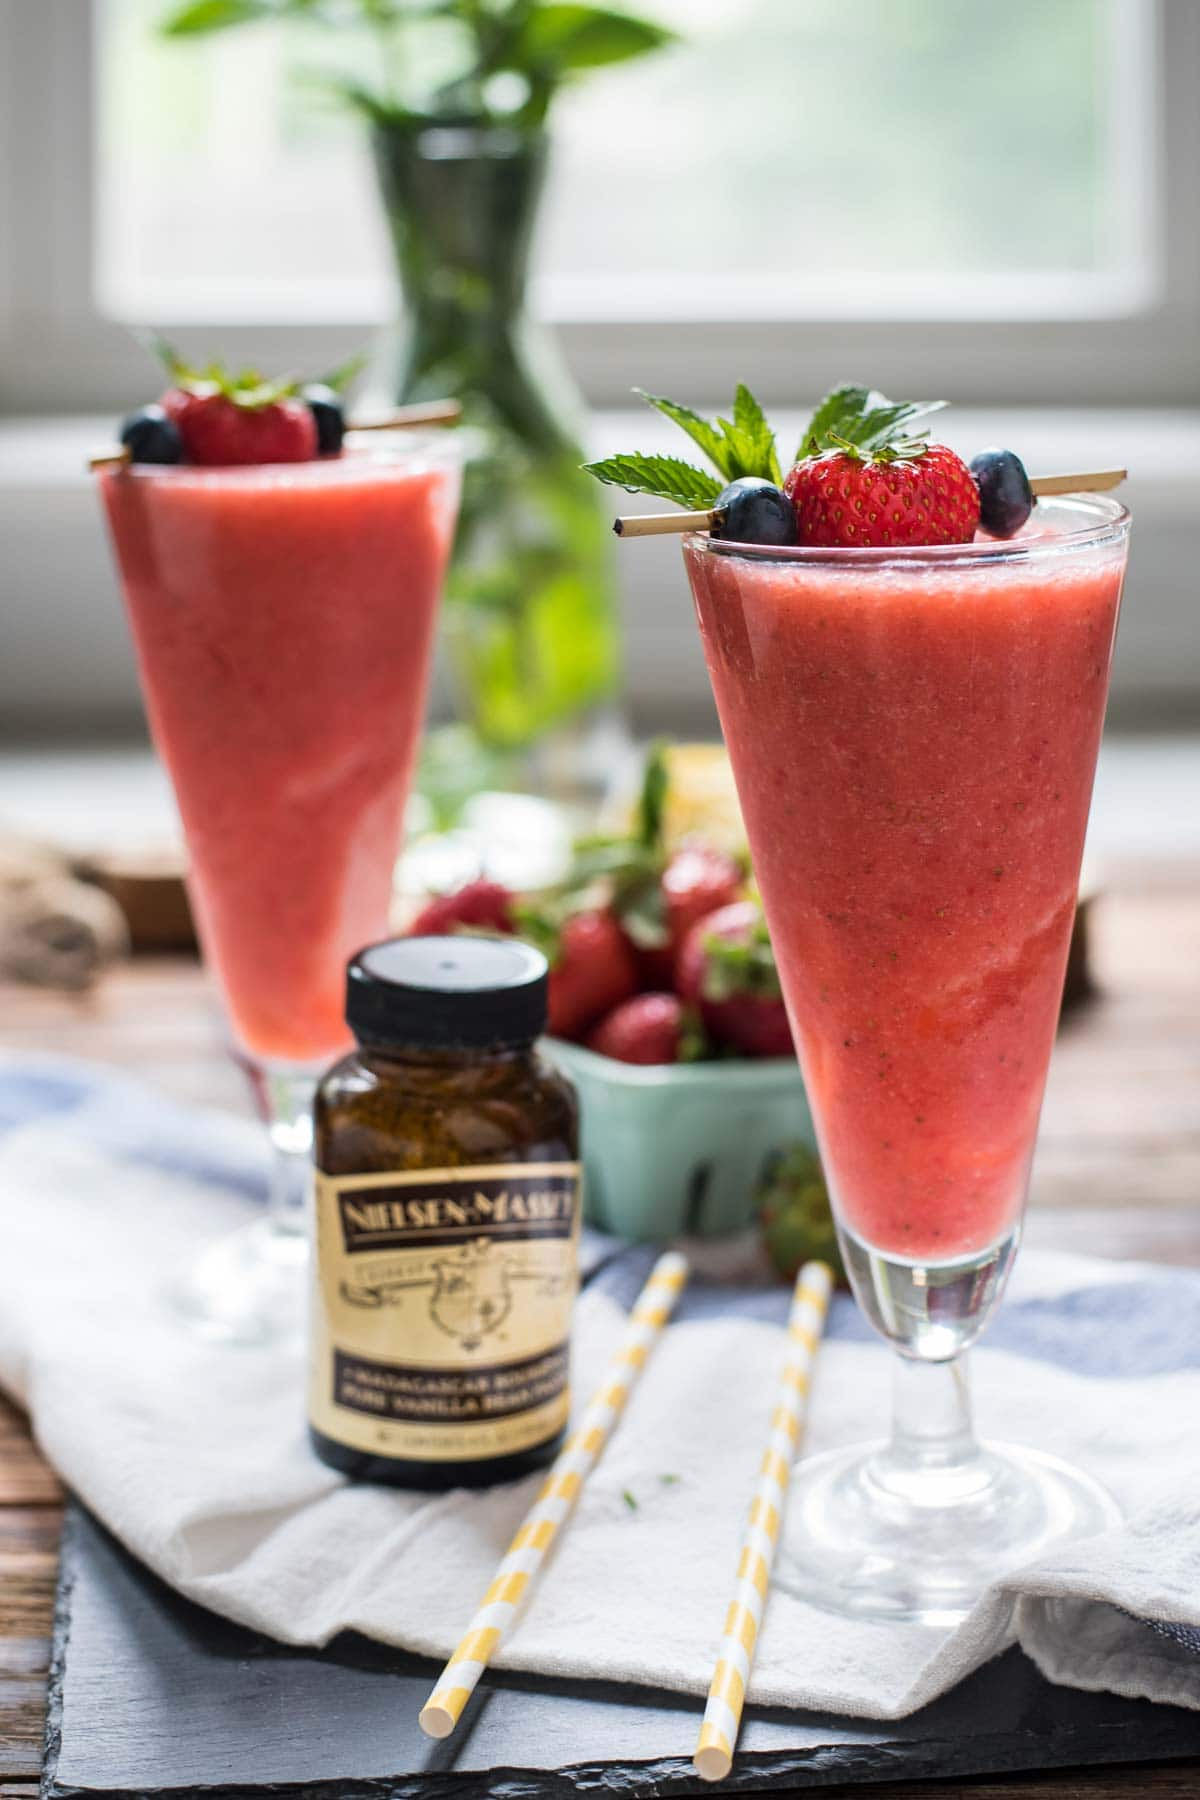 These Strawberry Vanilla Coolers are the ultimate summer thirst quencher.